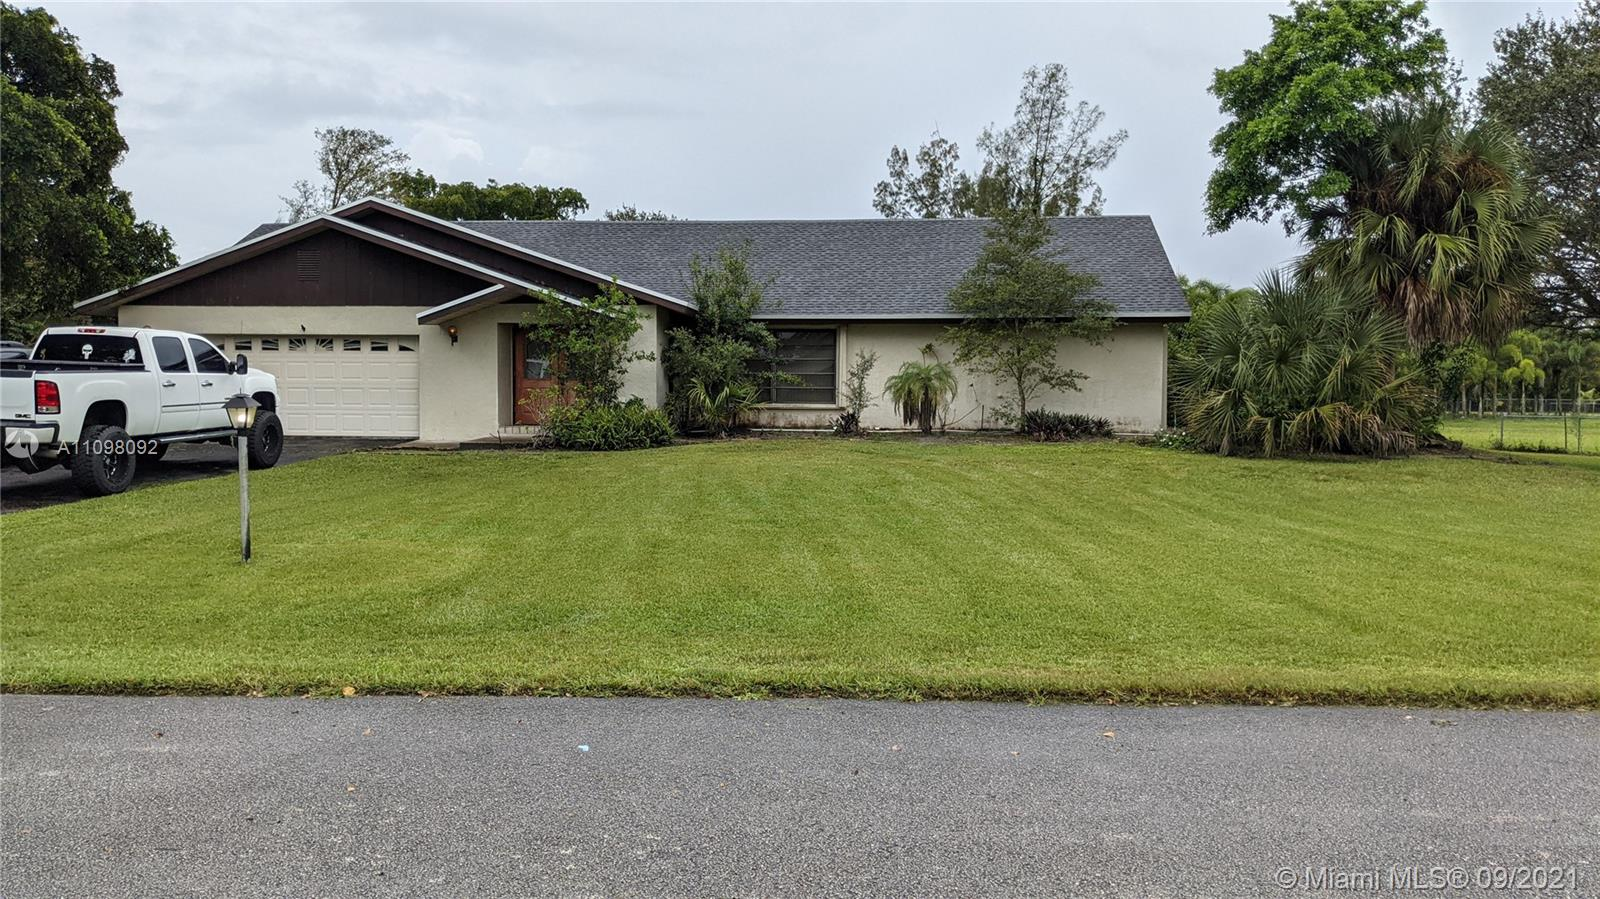 Sunshine Ranches, 4641 Lupo Ln, Southwest Ranches, Florida 33330